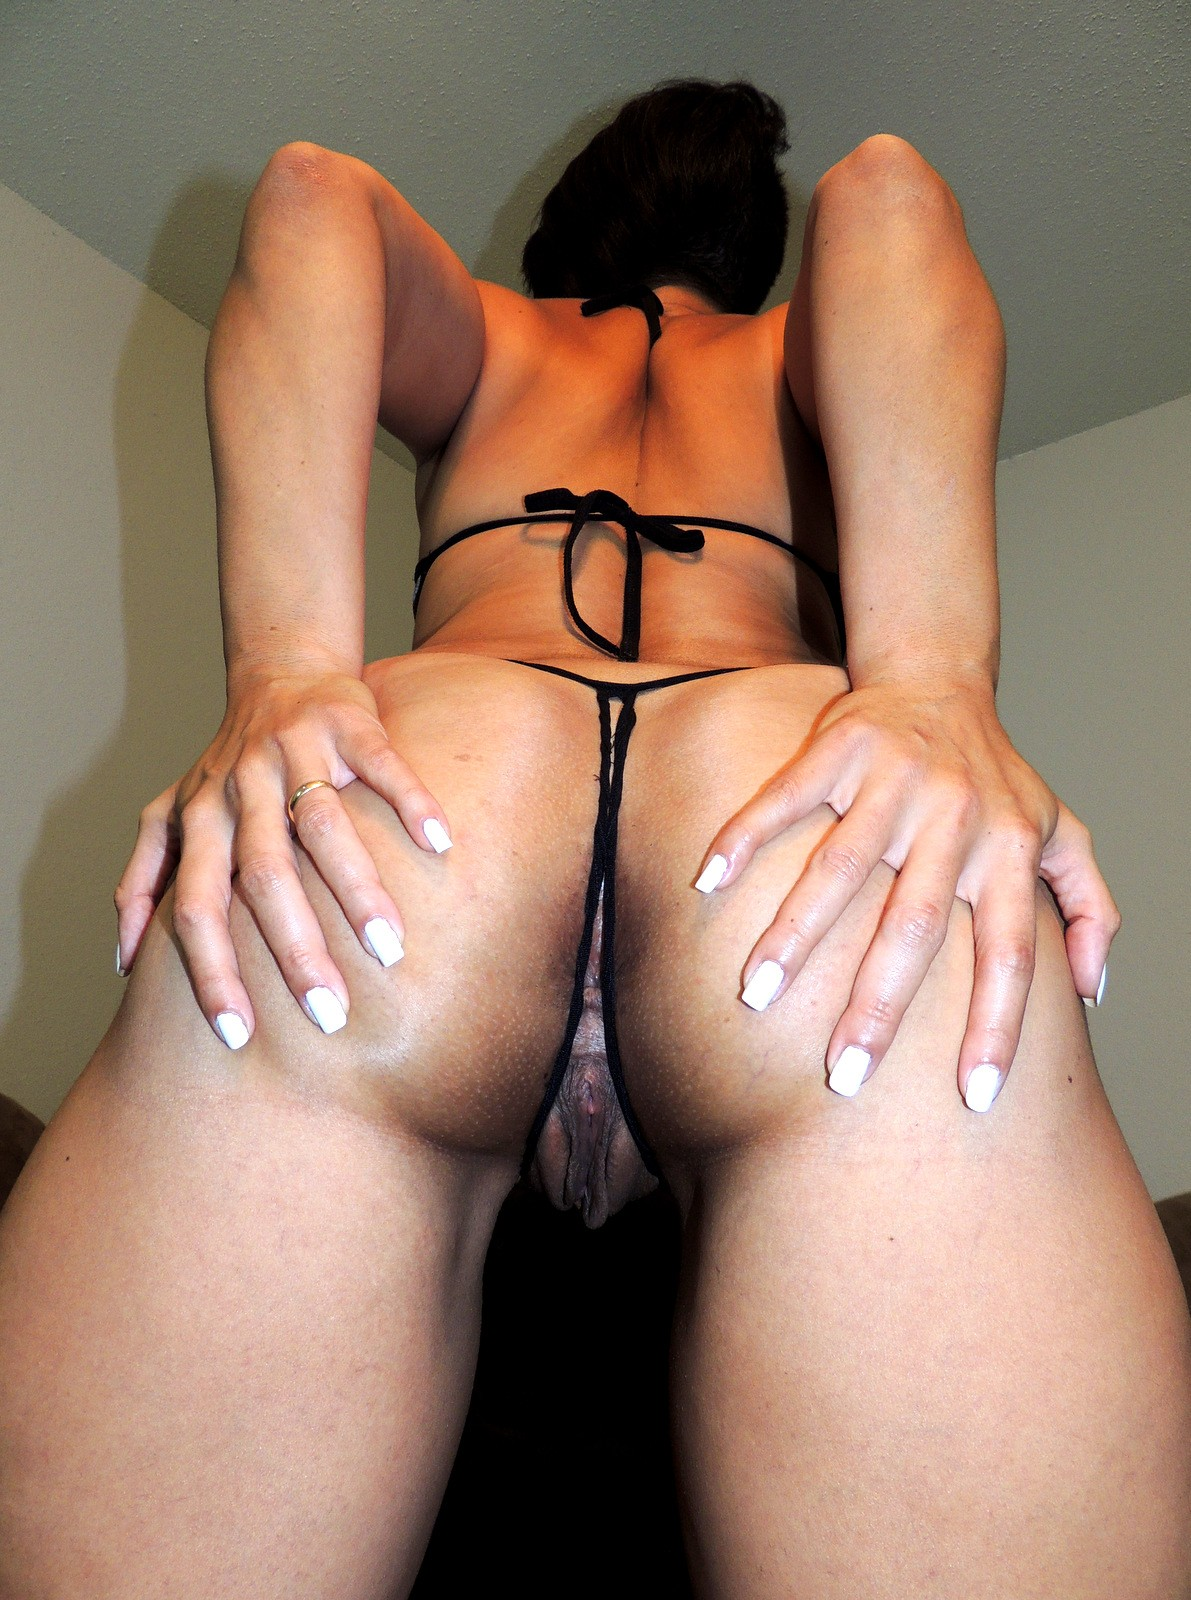 She loves being in control while she rides his cock - 1 1